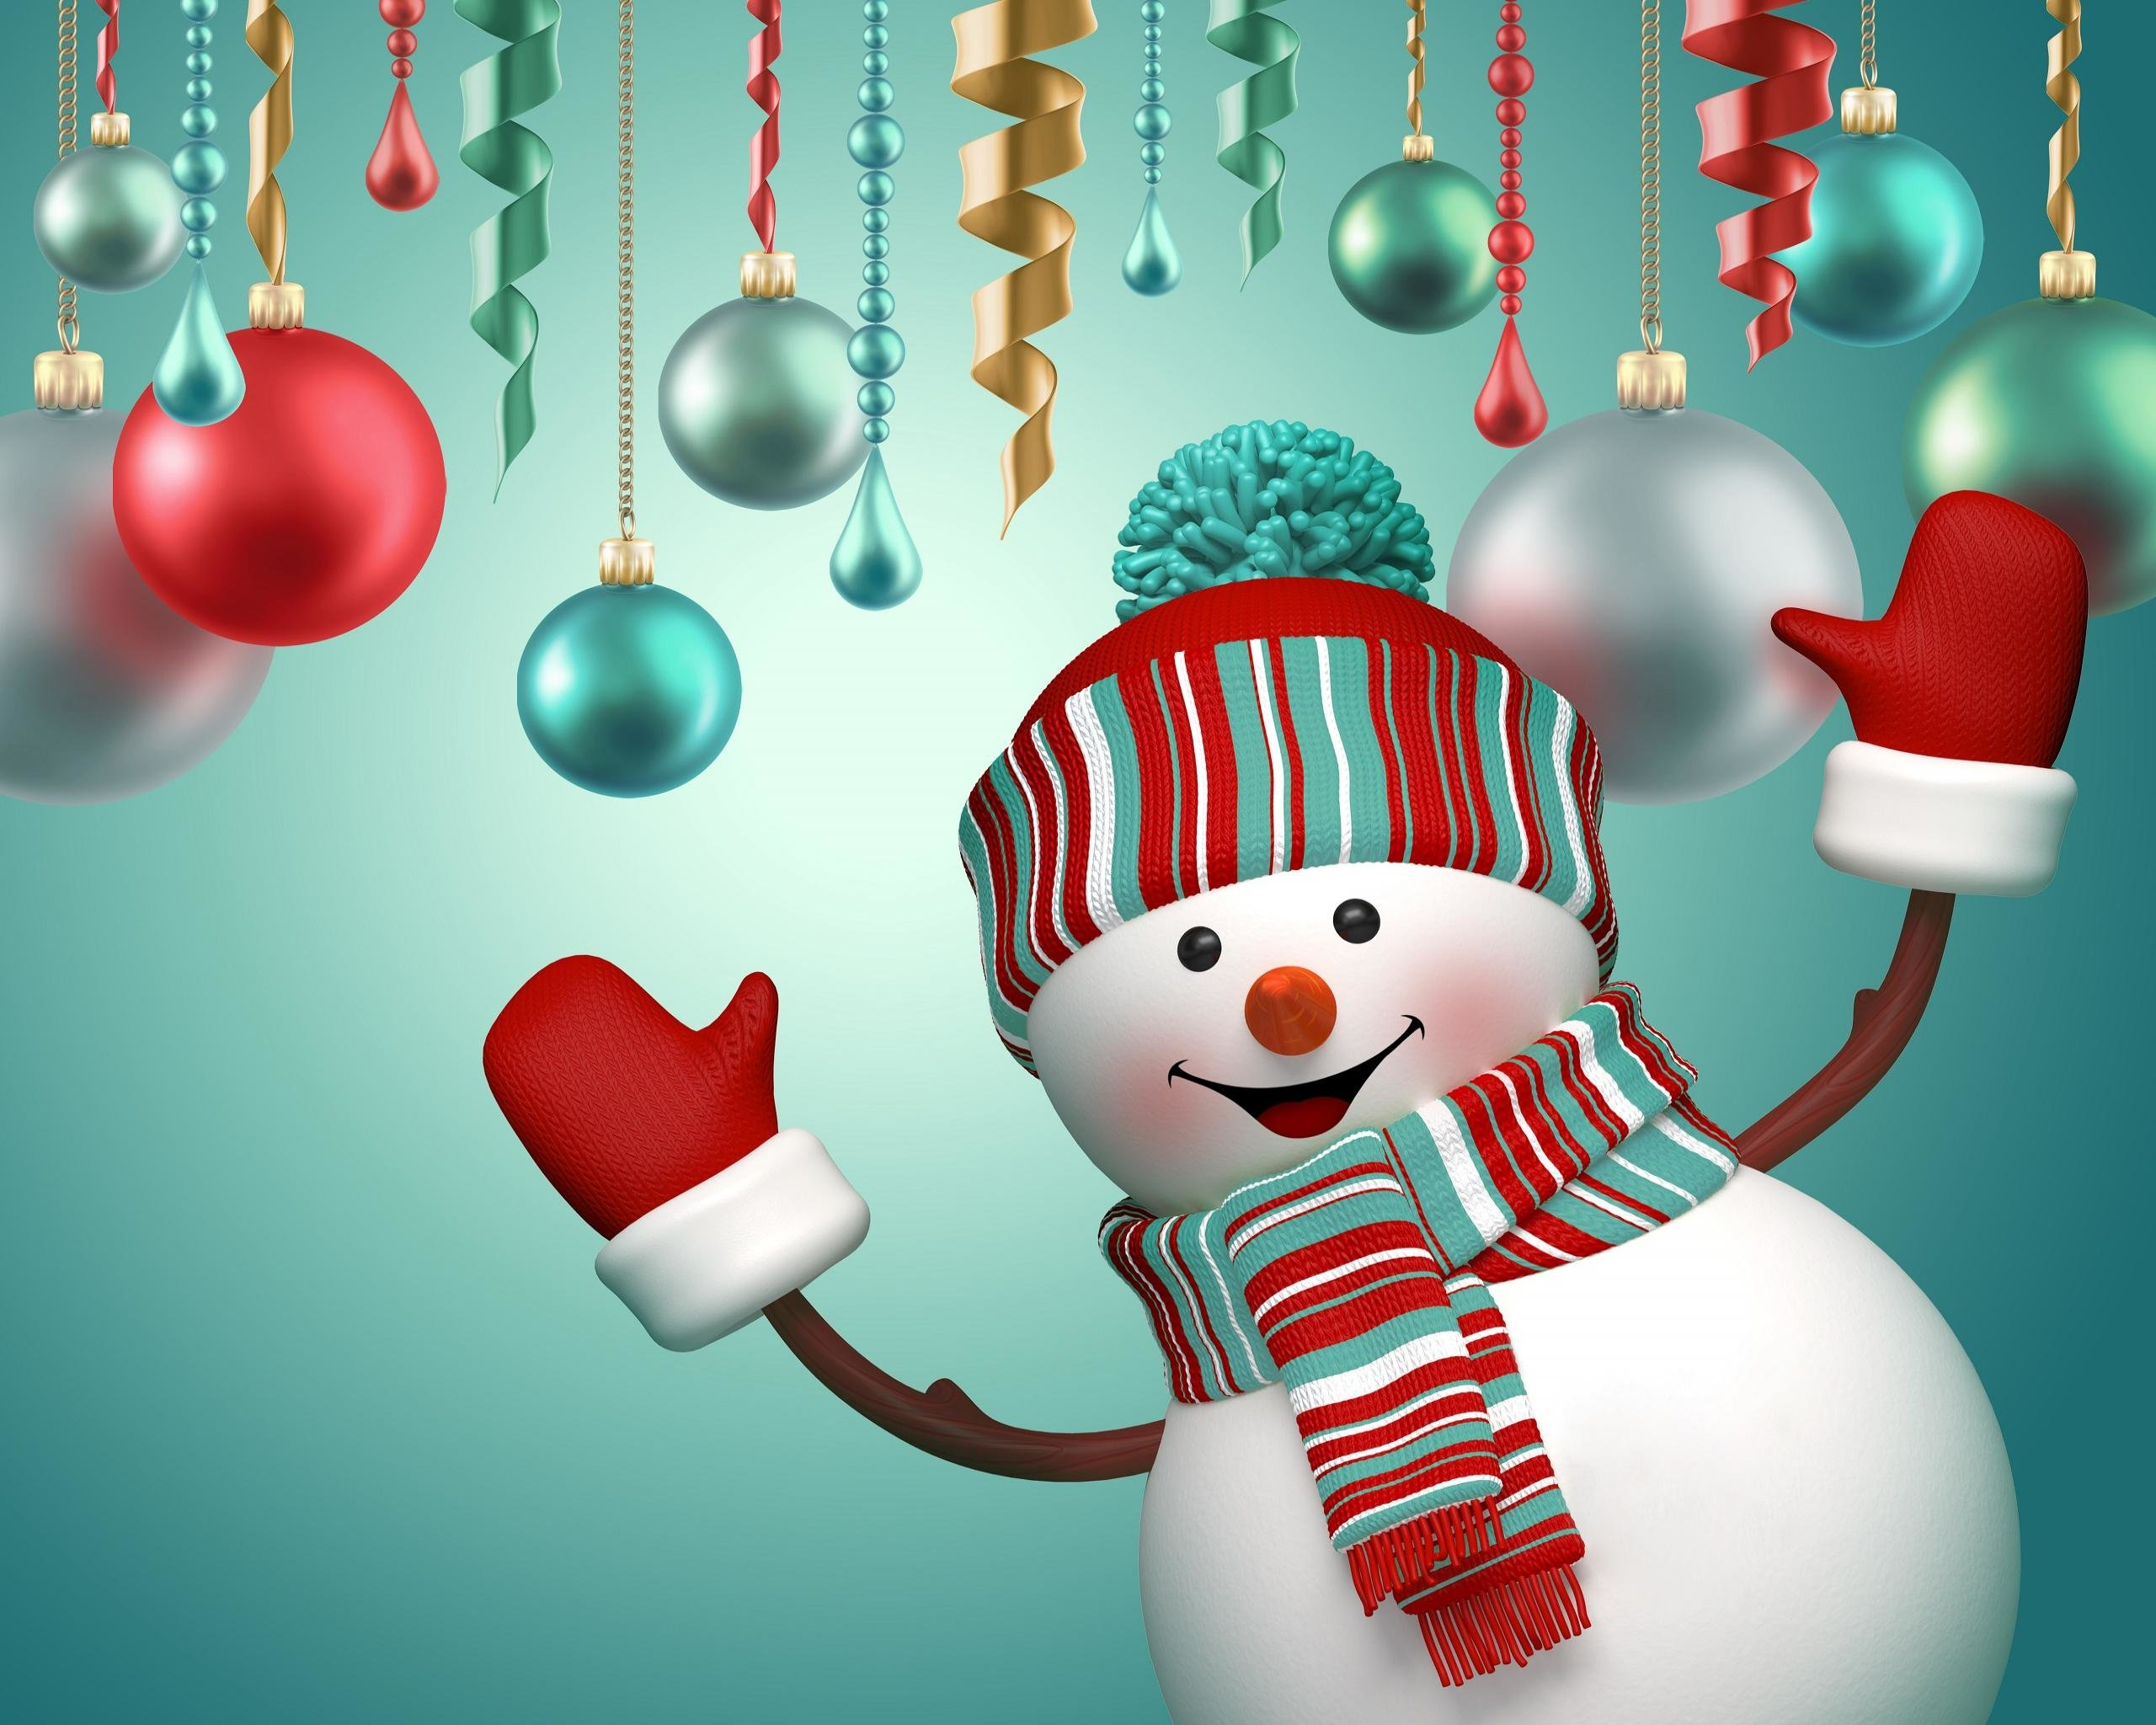 High Resolution Snowman Hd 2560x2048 Wallpaper Id115547 For Pc